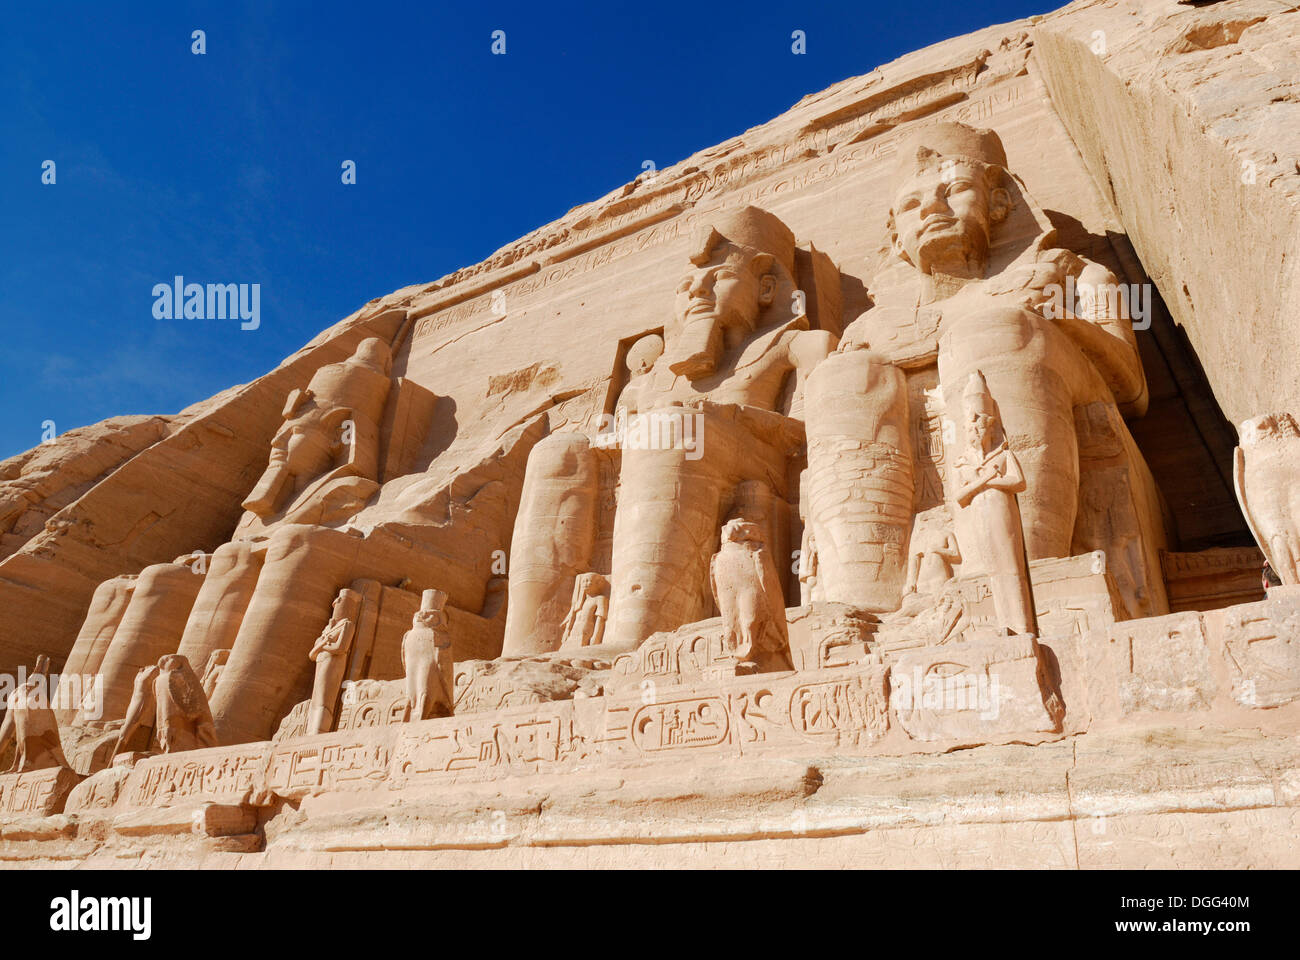 Statues in the Great Temple of Ramses II, Abu Simbel, Nubia, Egypt, Africa Stock Photo